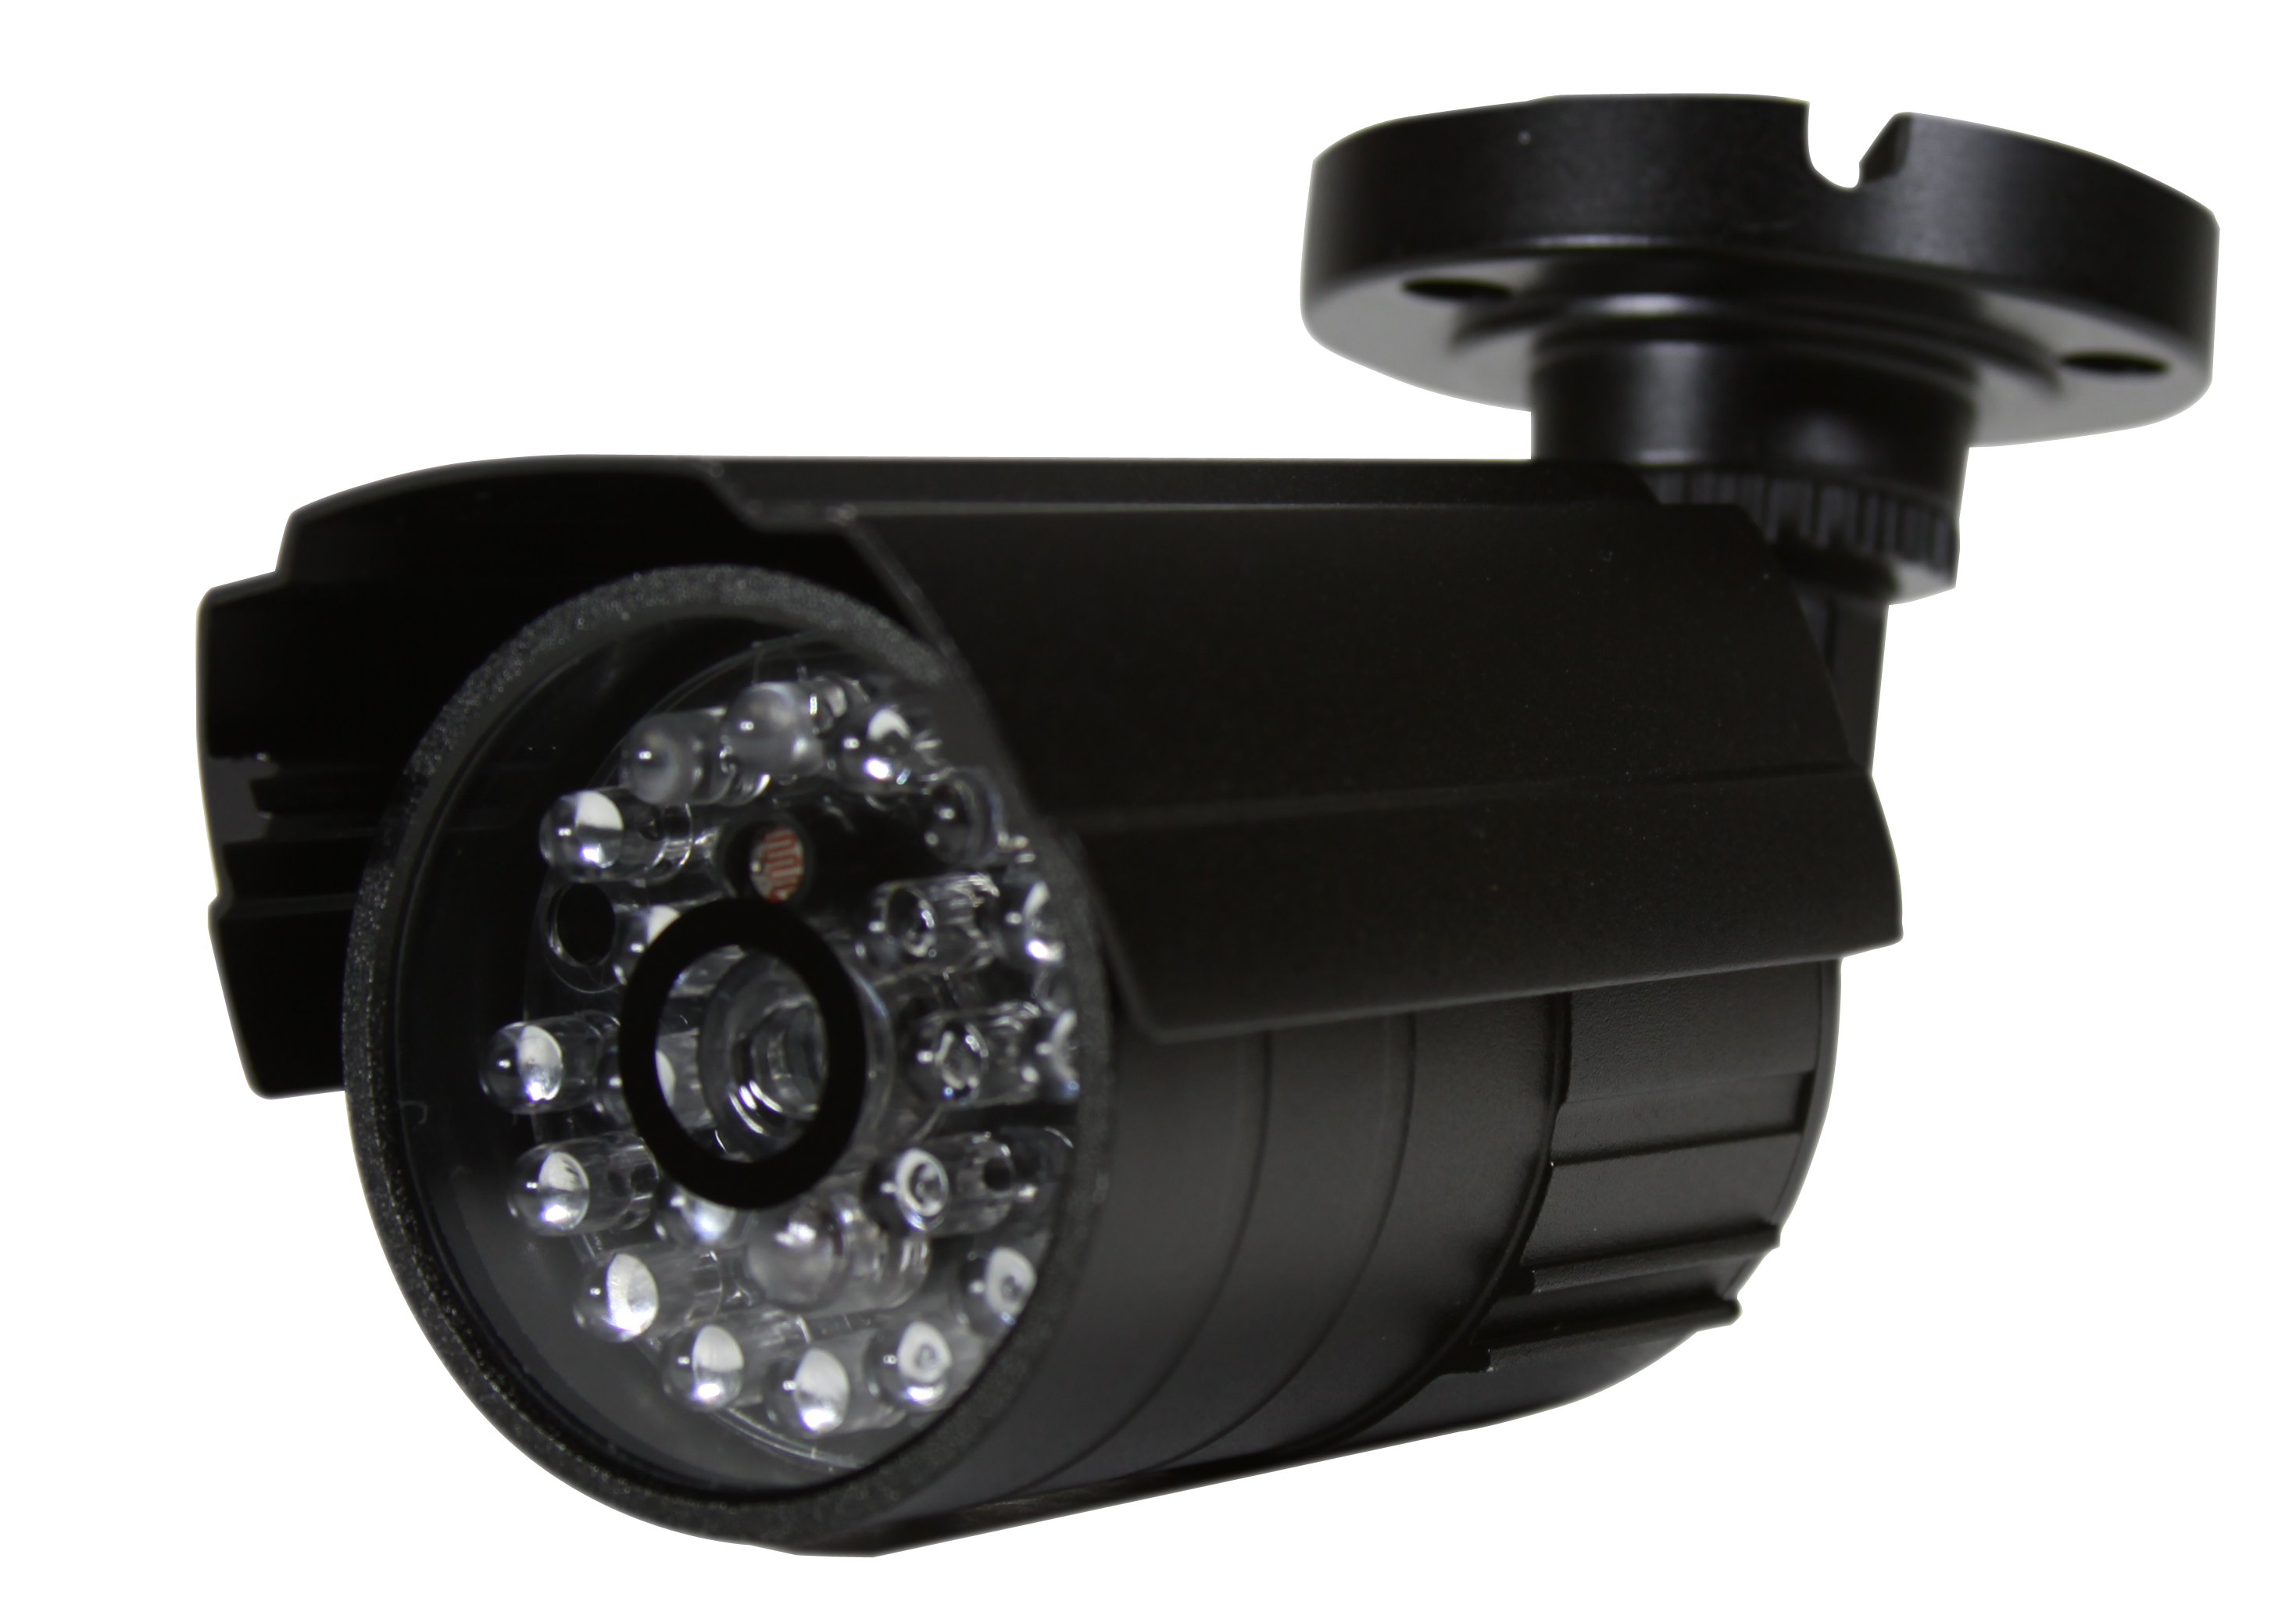 First Alert PRO-DC5 Battery Operated Low Light Activated Barrel Decoy Camera, Black Housing, Indoor/Outdoor